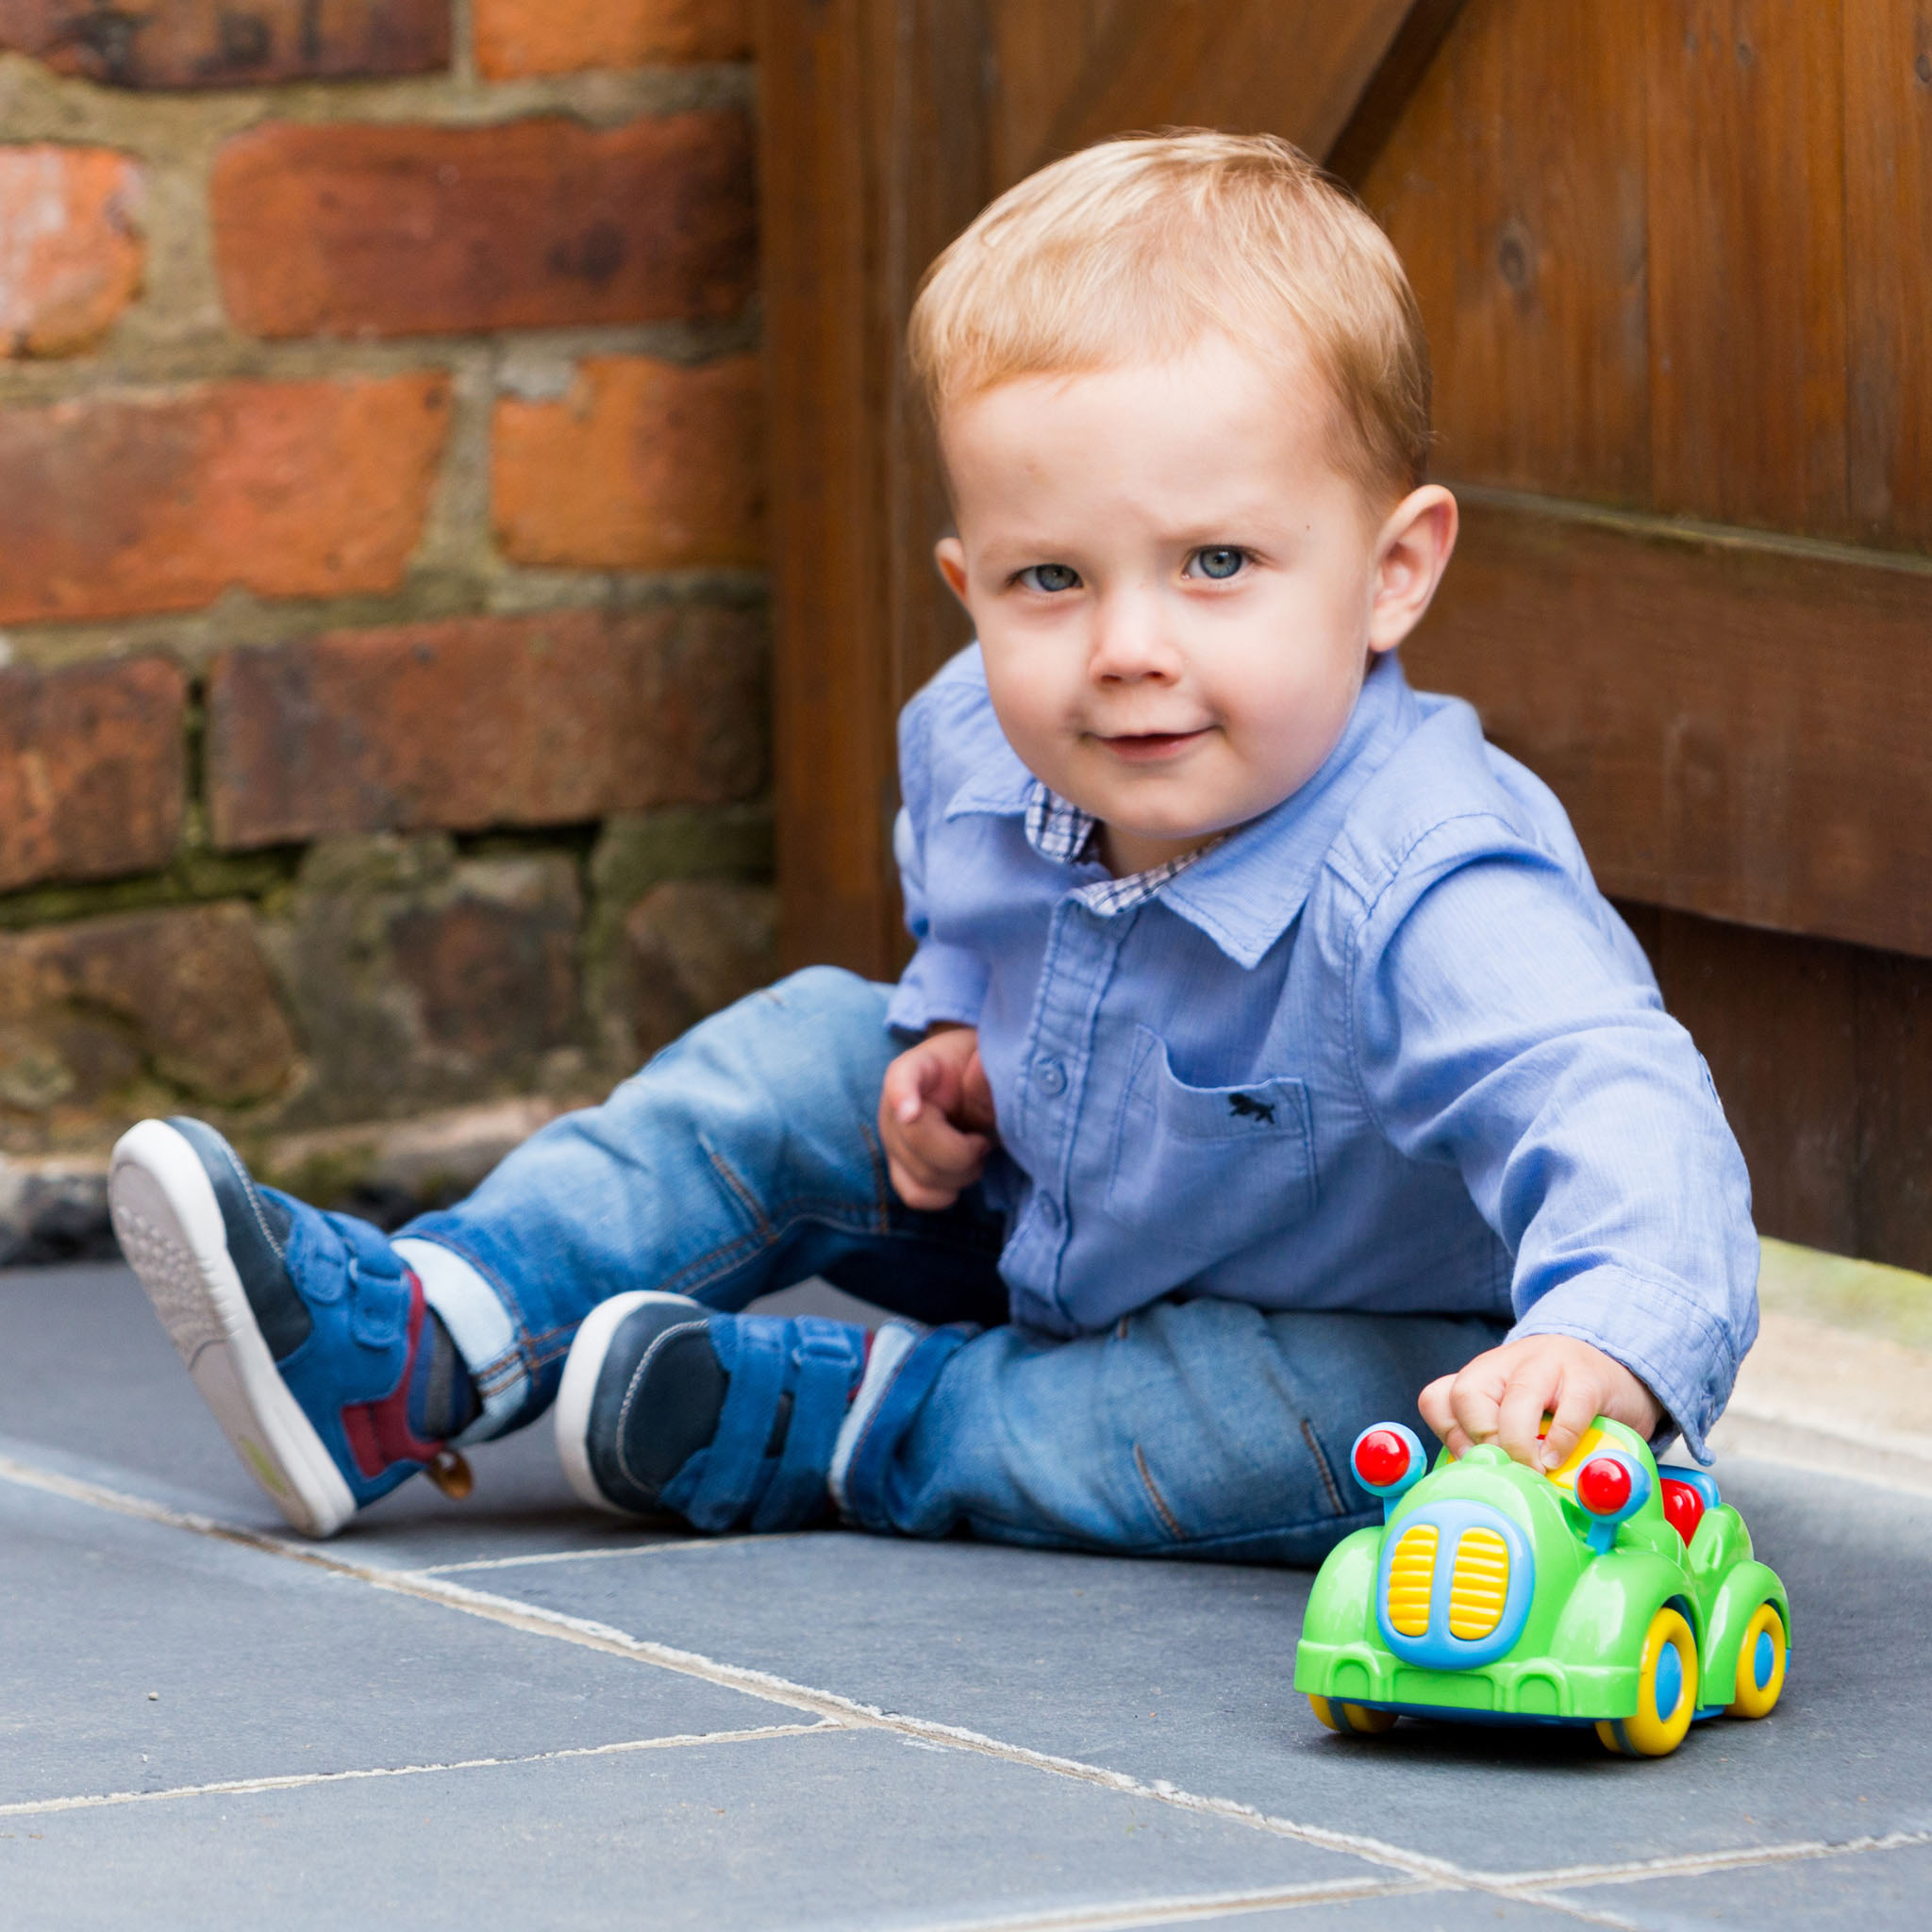 Lifestyle family portrait photography of a toddler playing in Urmston, Manchester